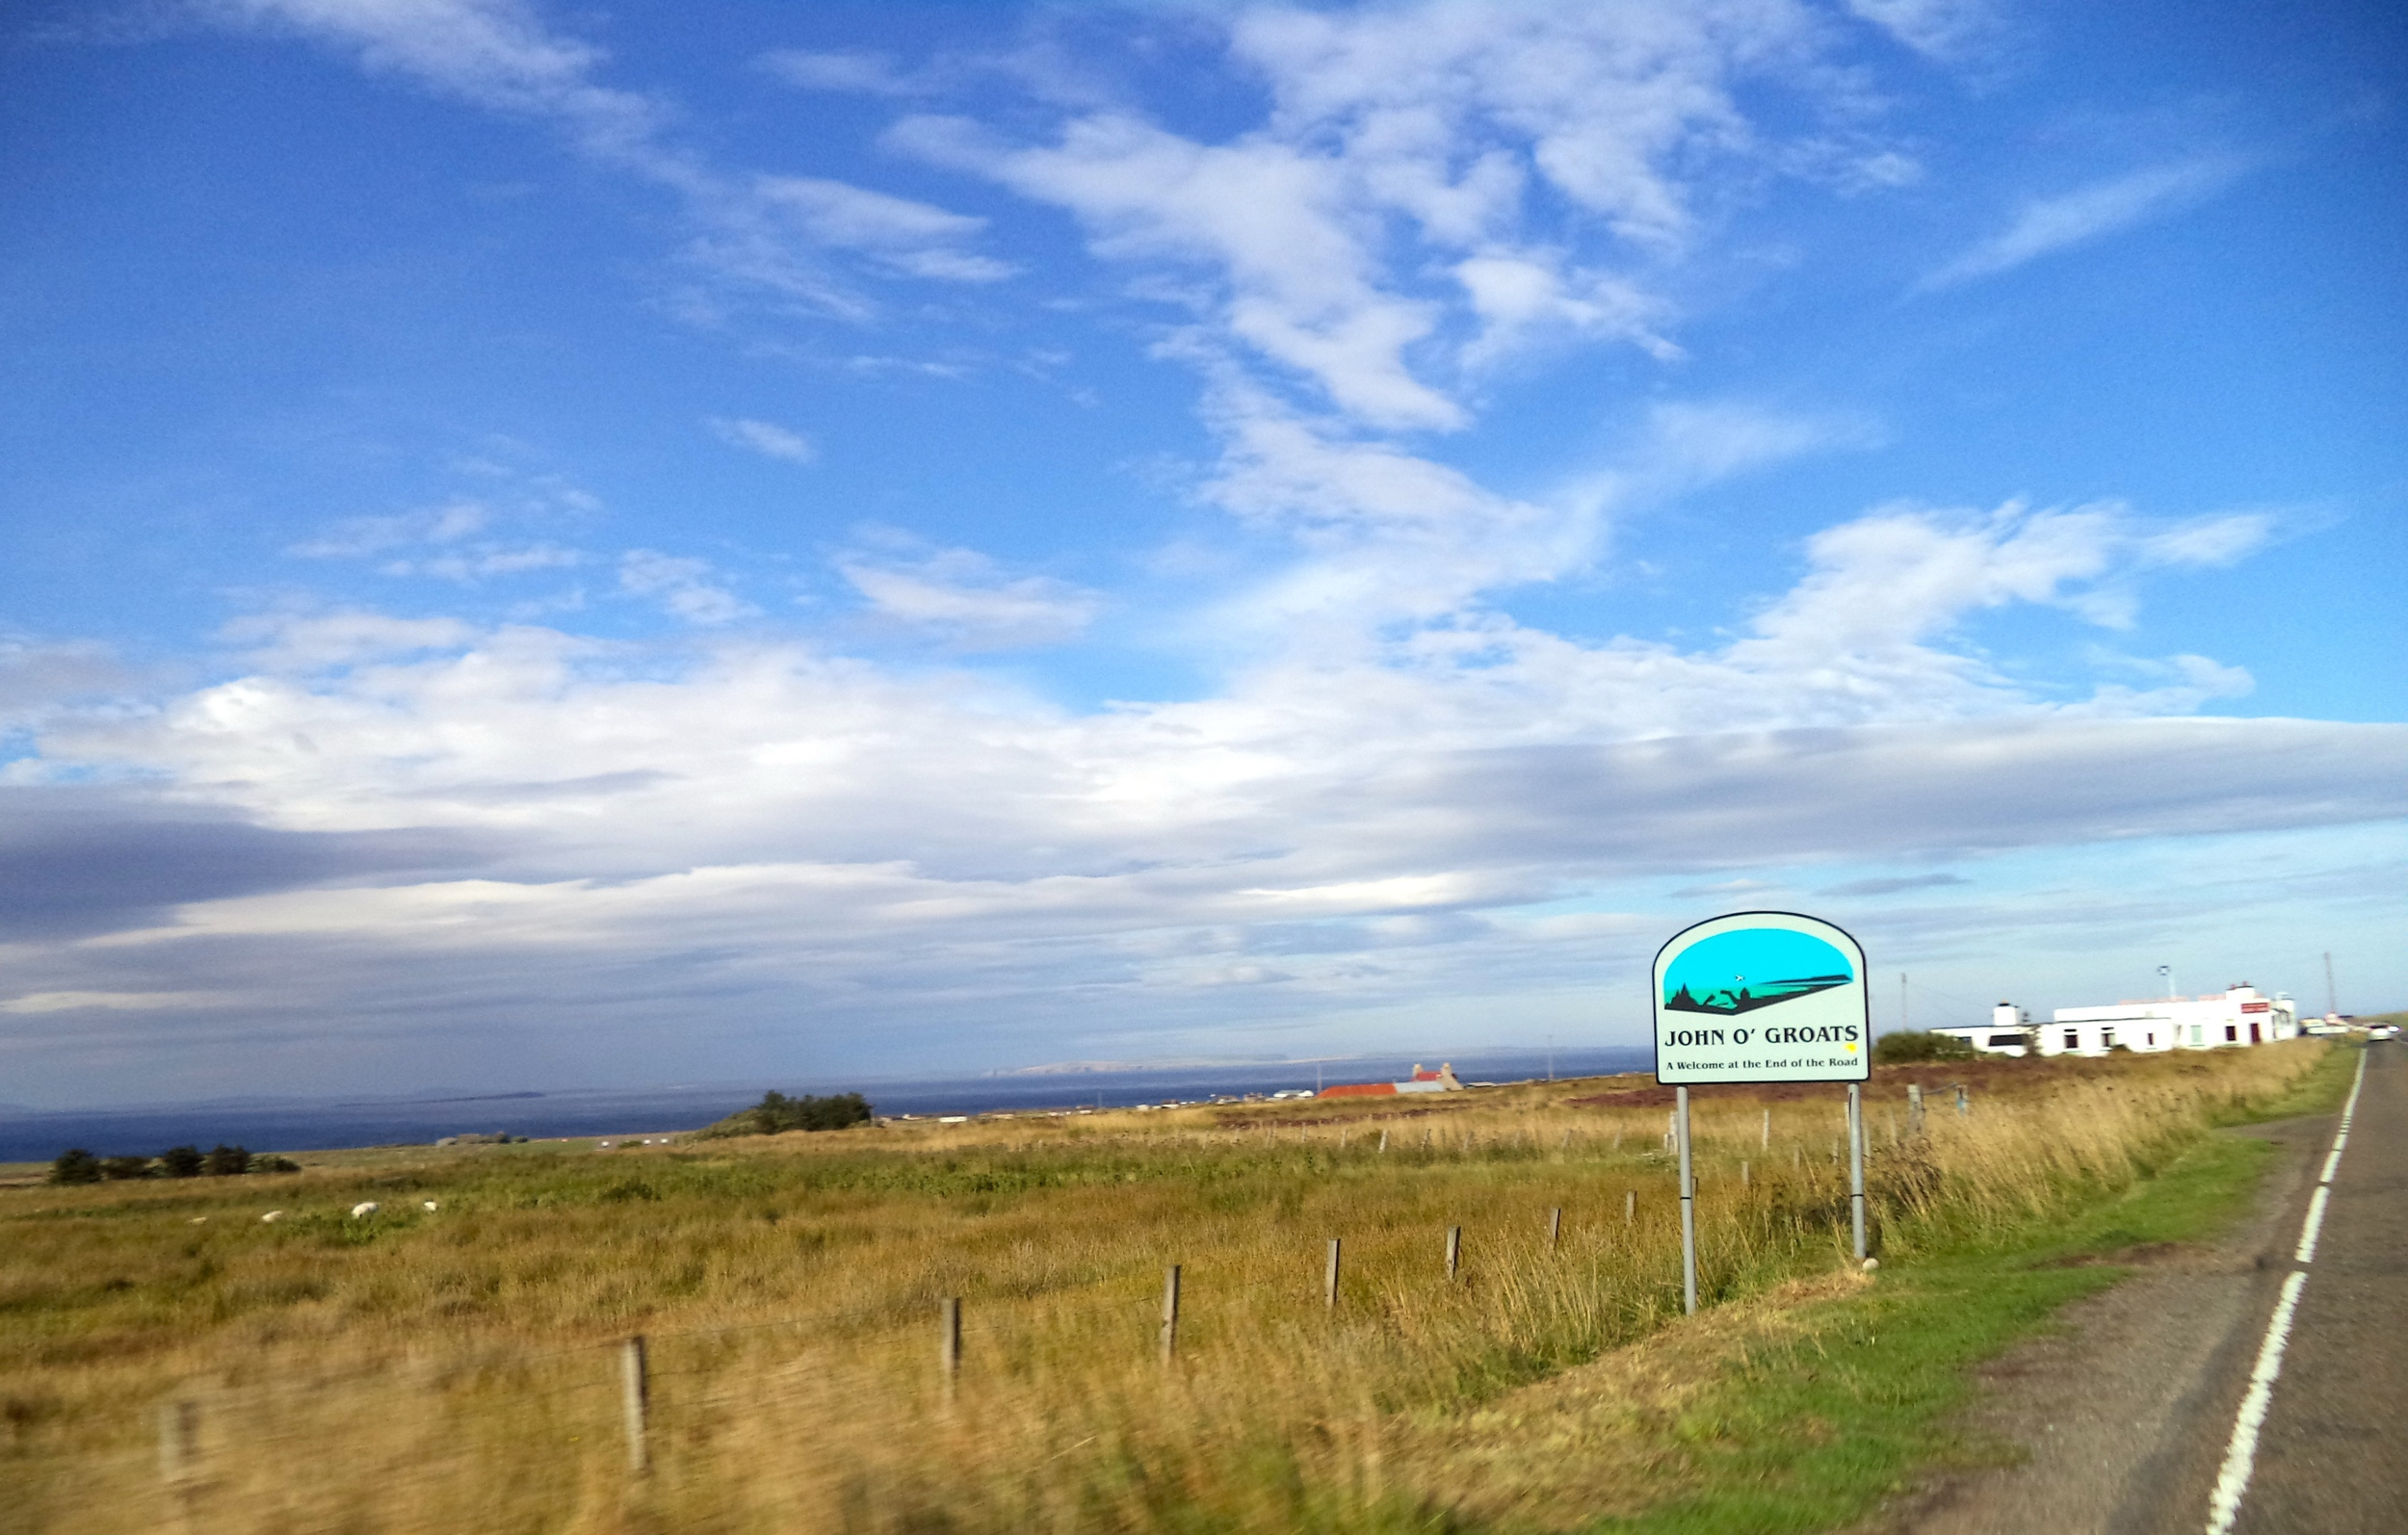 My first impression of John O' Groats.